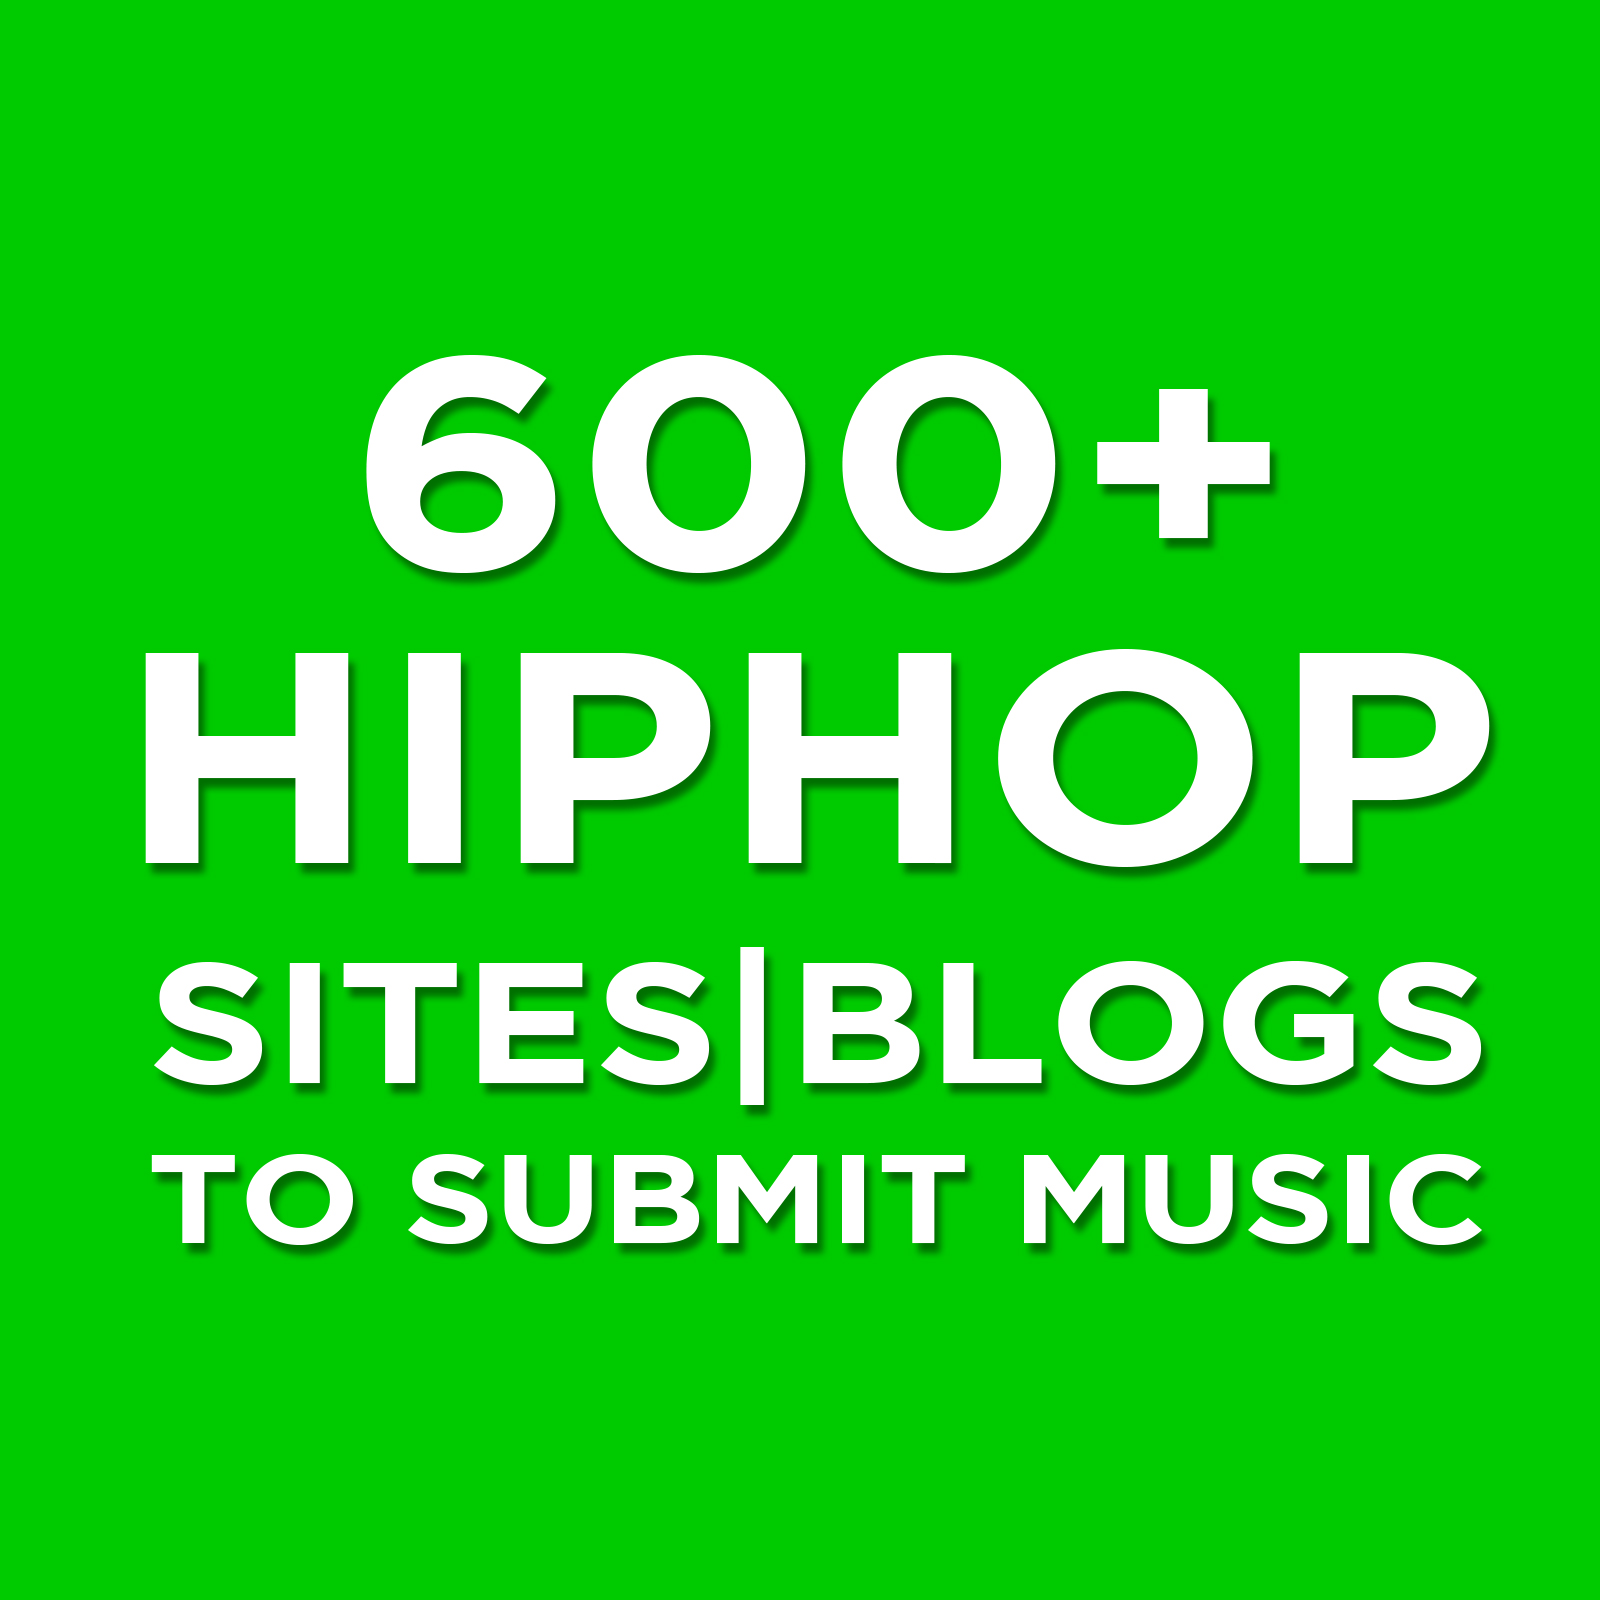 600+ HipHop Website & Blog - List